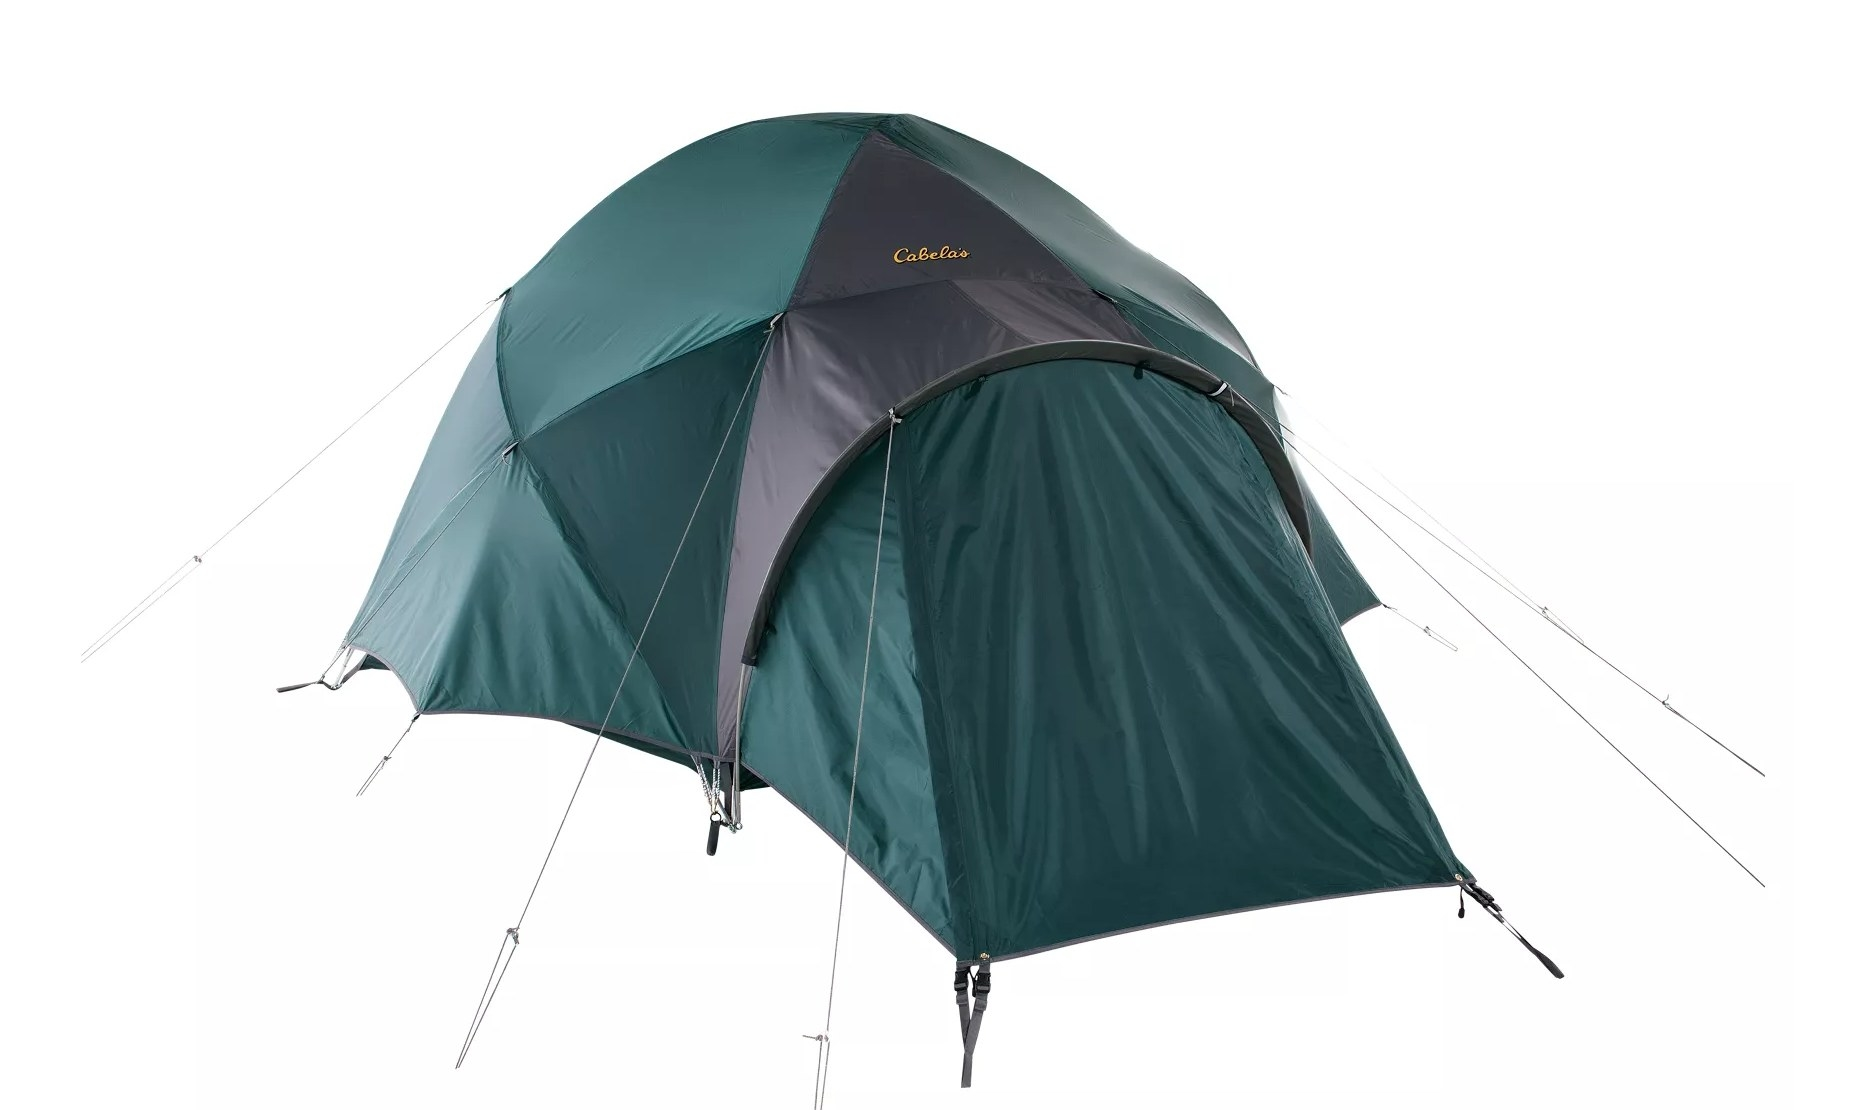 the four-person tent in teal